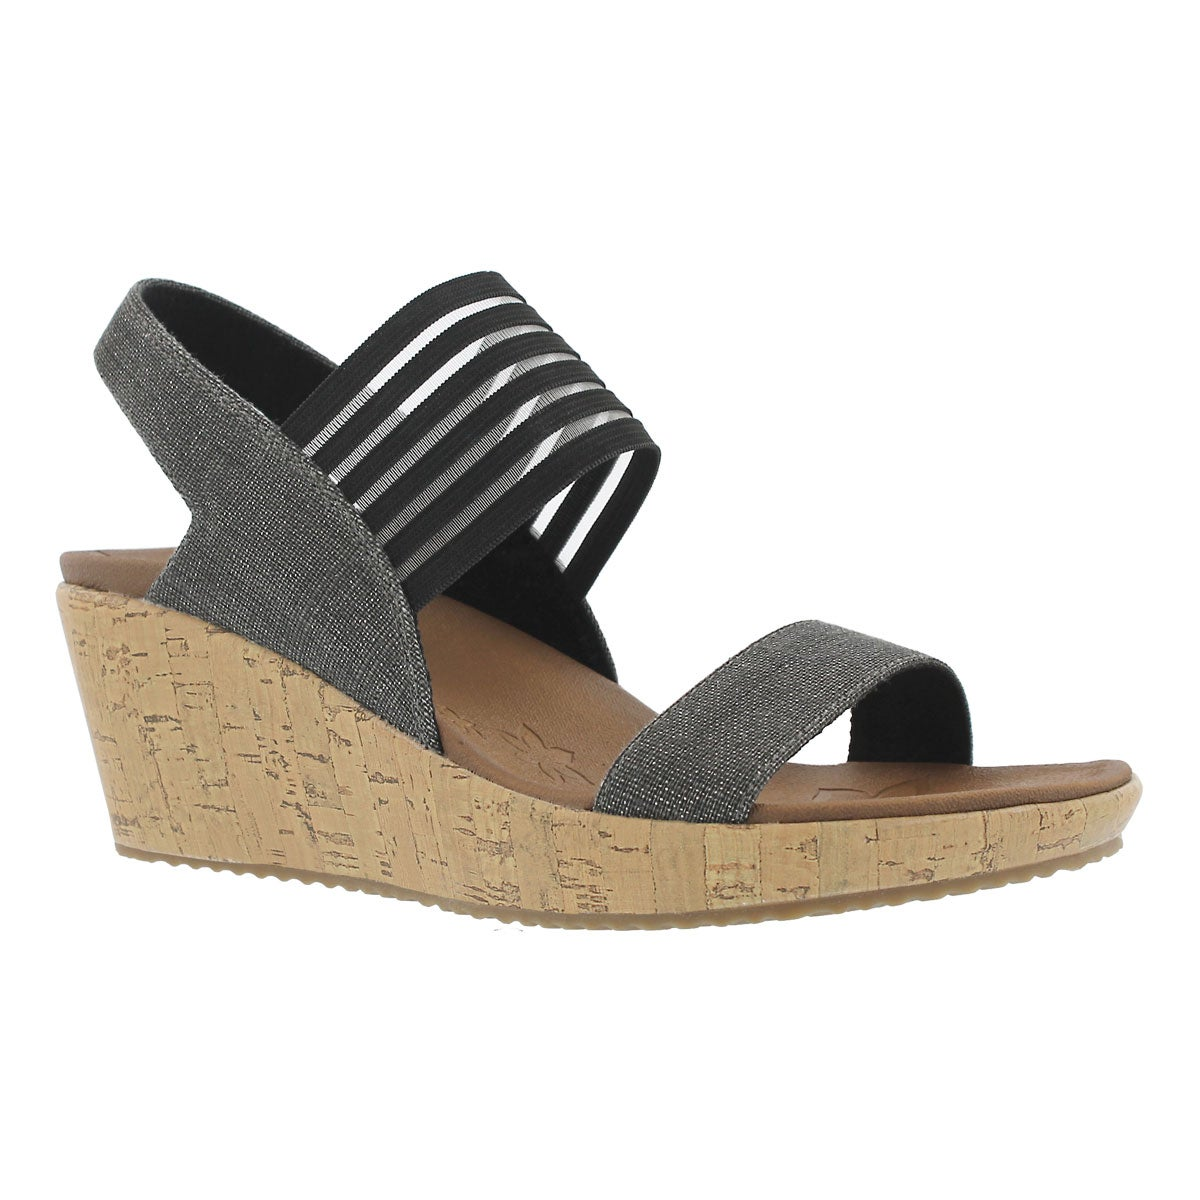 Women's BEVERLEE SMITTEN KITTEN bk wedge sandals